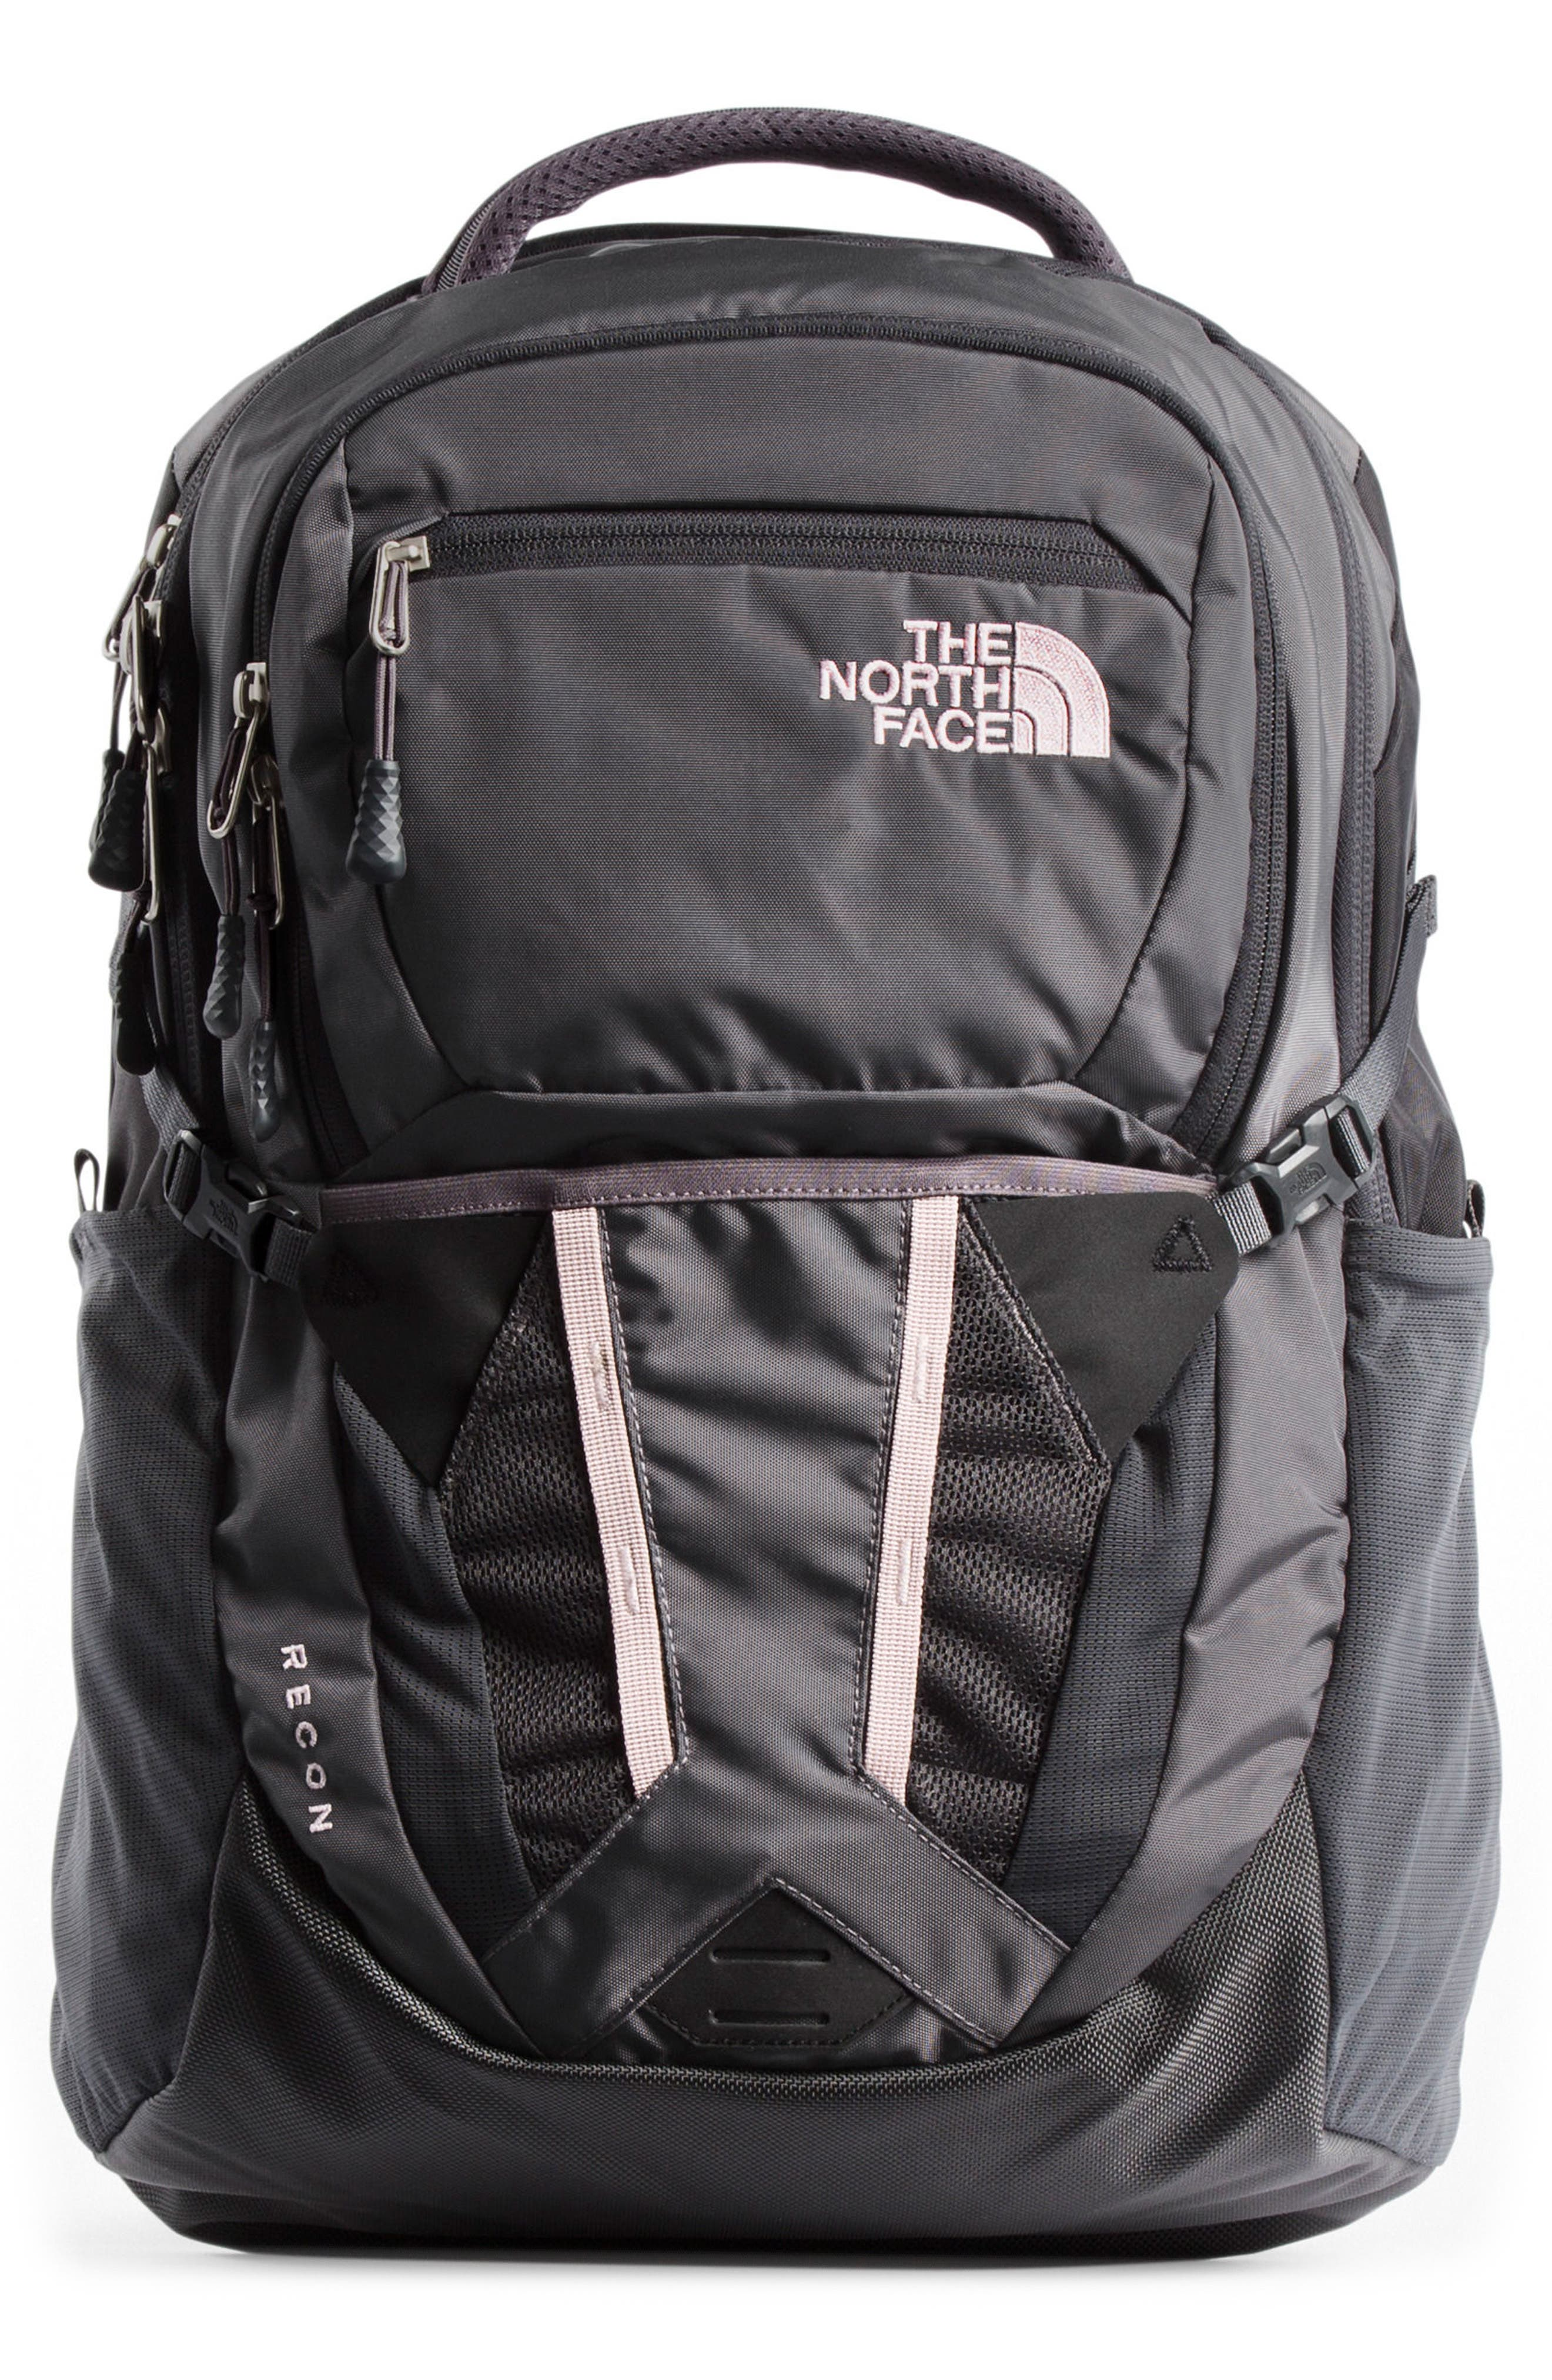 ed1f6eeb7 The North Face Womens Jester Luxe Backpack Rose Gold - CEAGESP